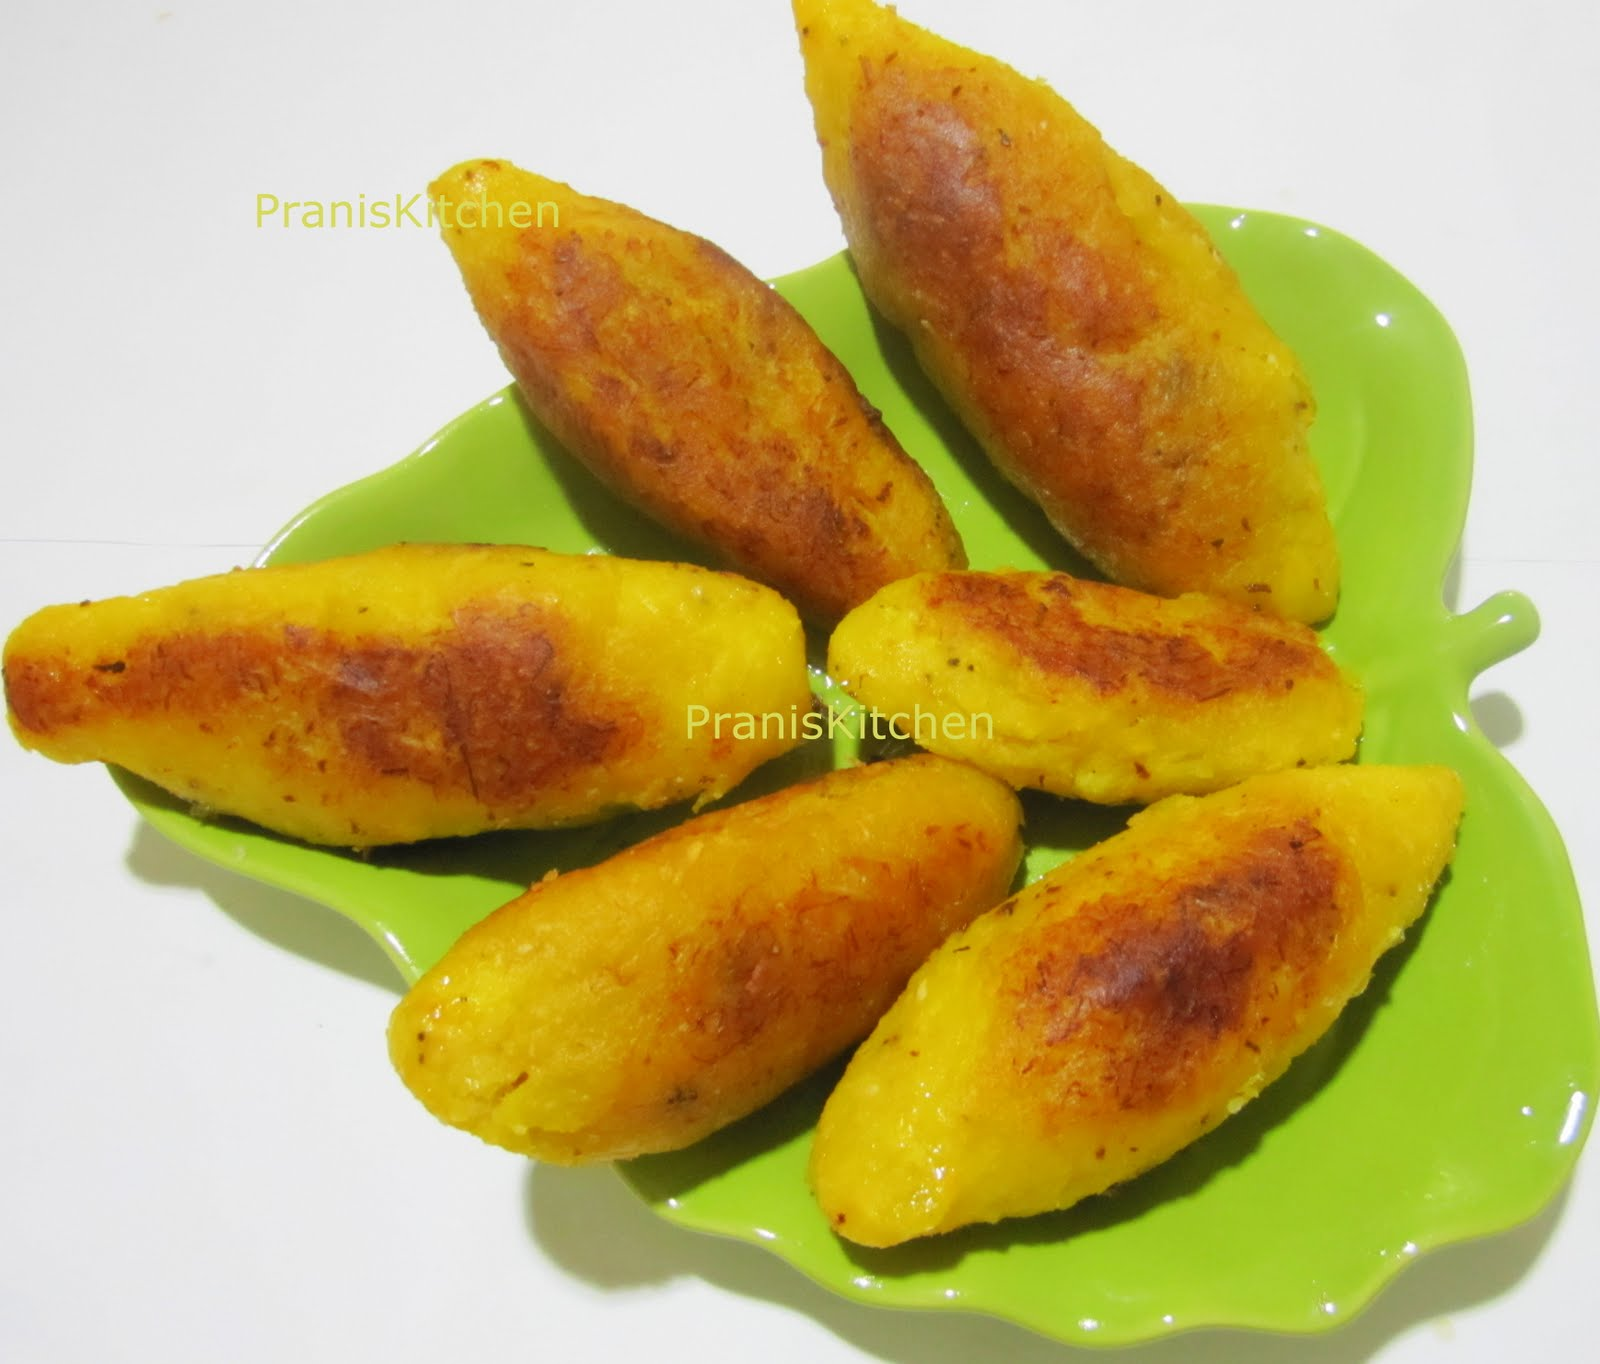 Praniskitchen recipes for food lovers try it you ll love it unnakaya stuffed ripe plantain with coconut forumfinder Gallery